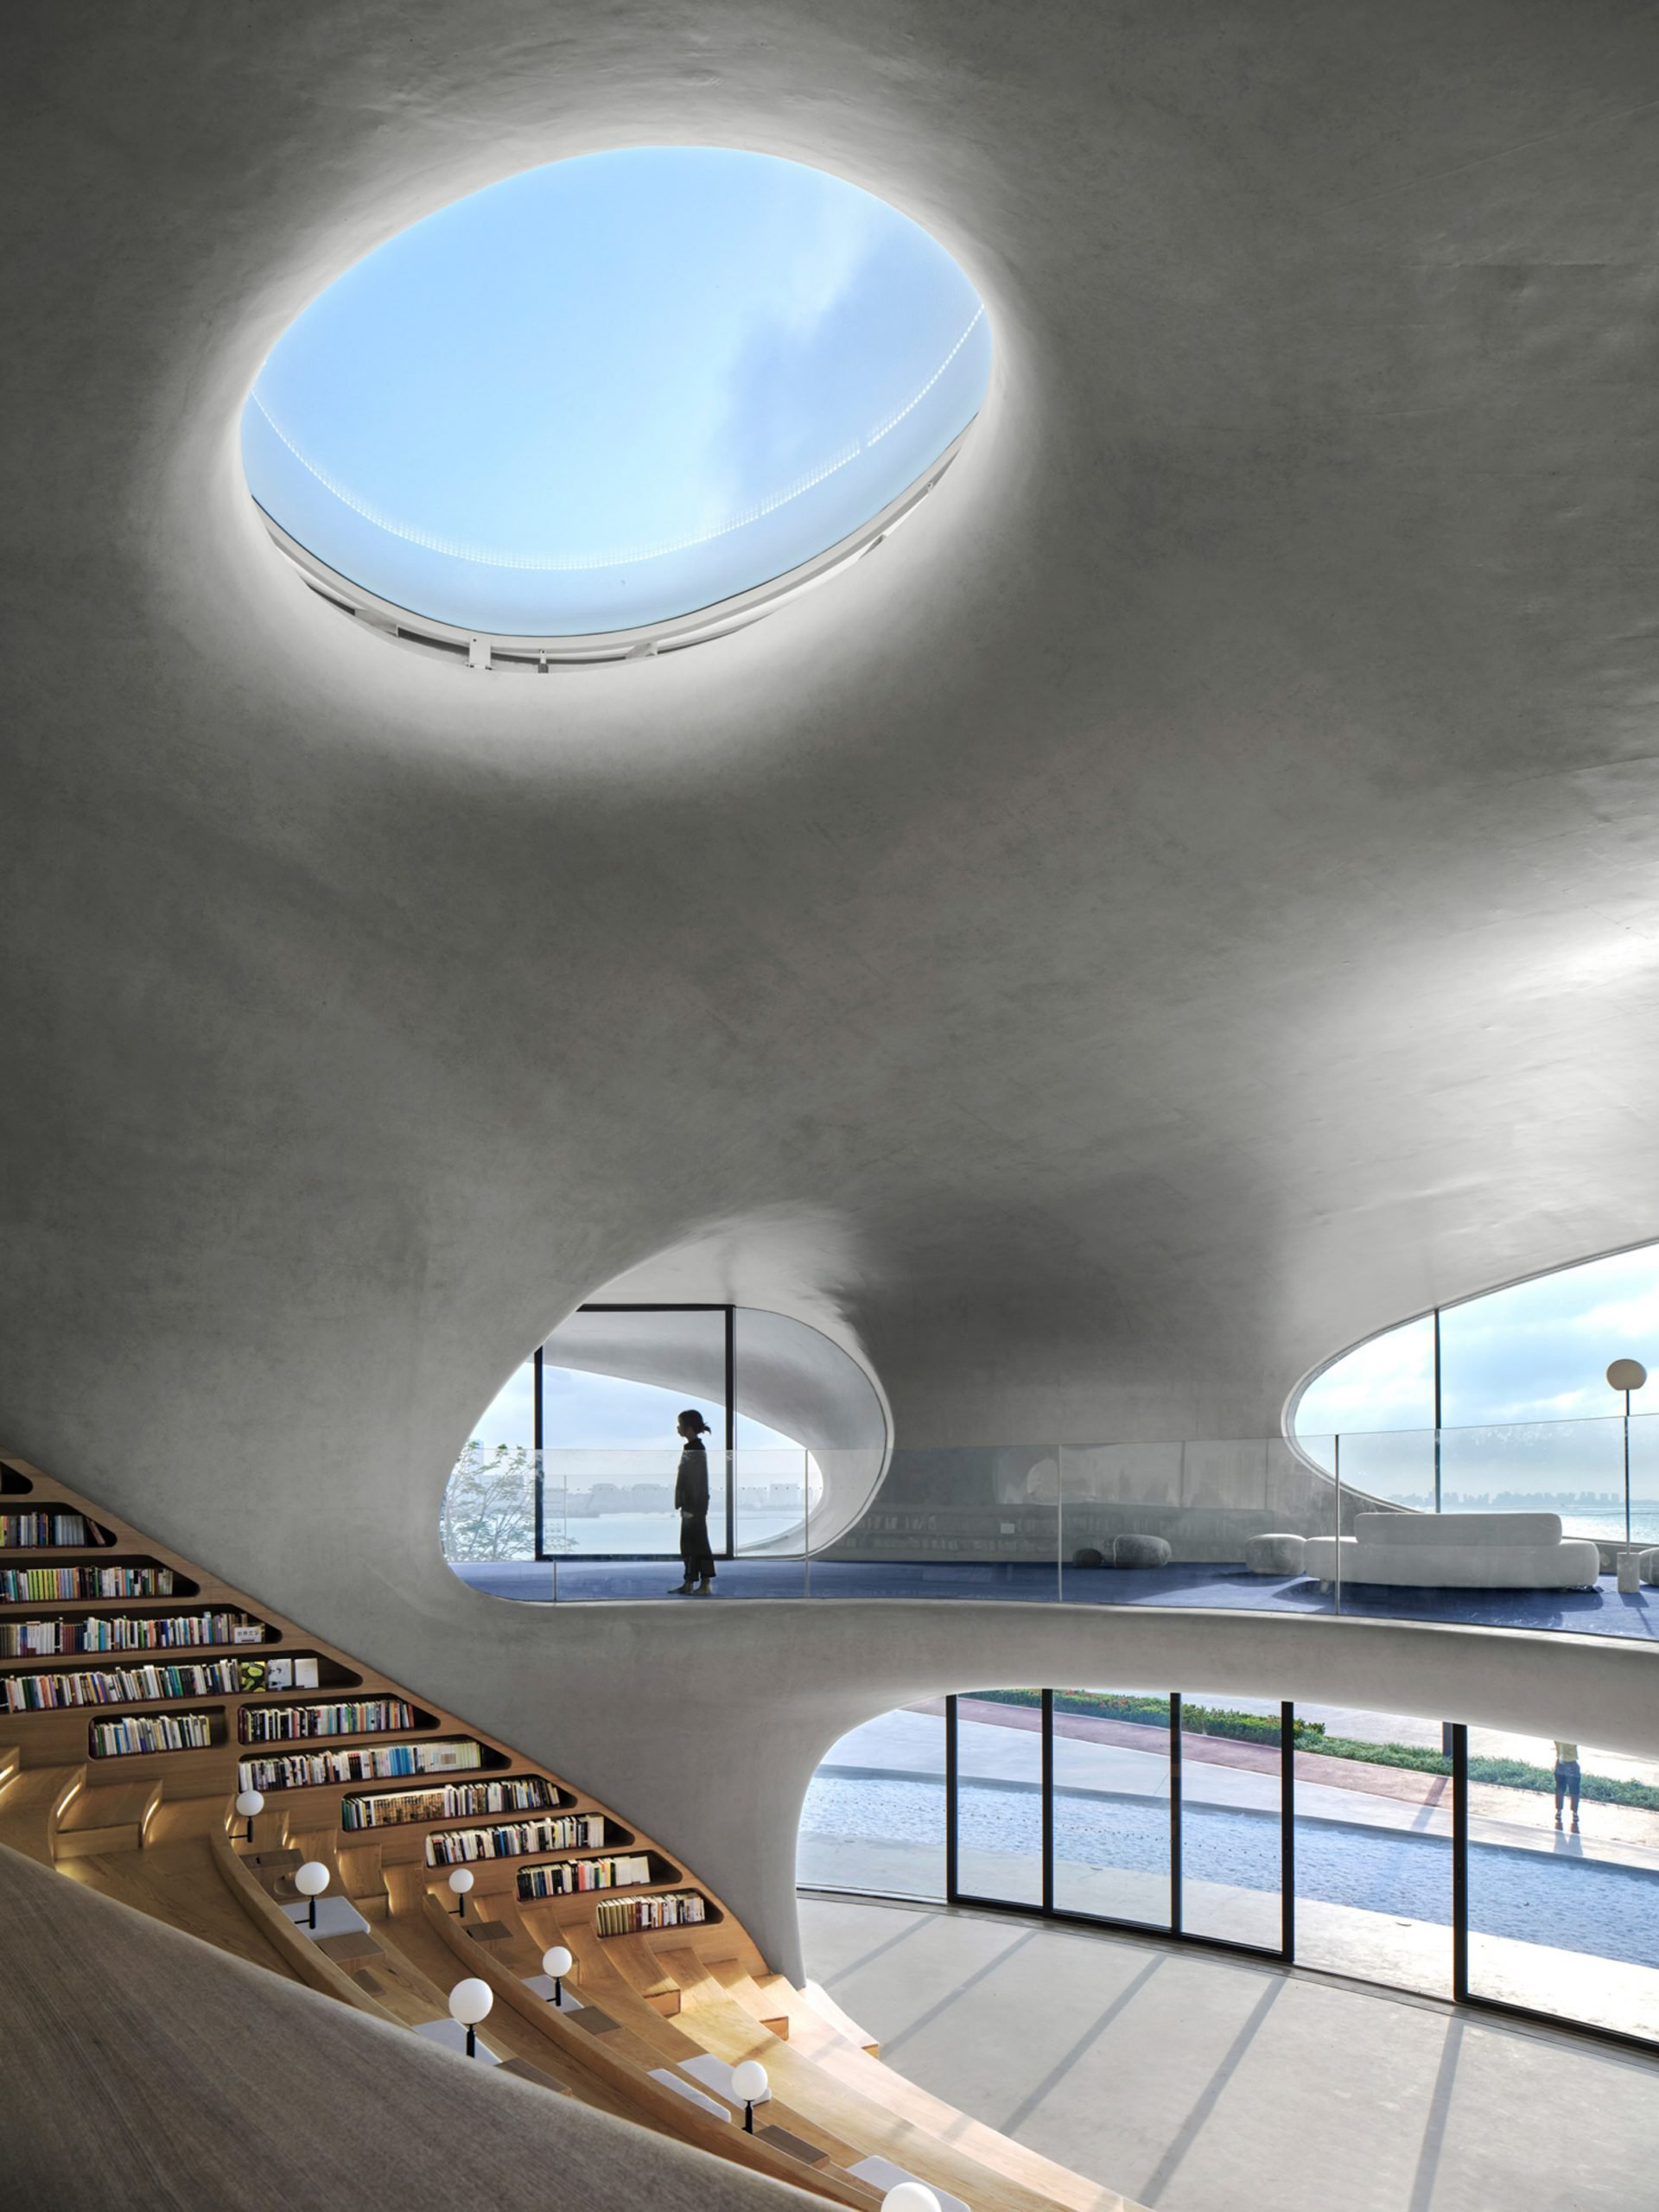 A concrete library with bleacher seating